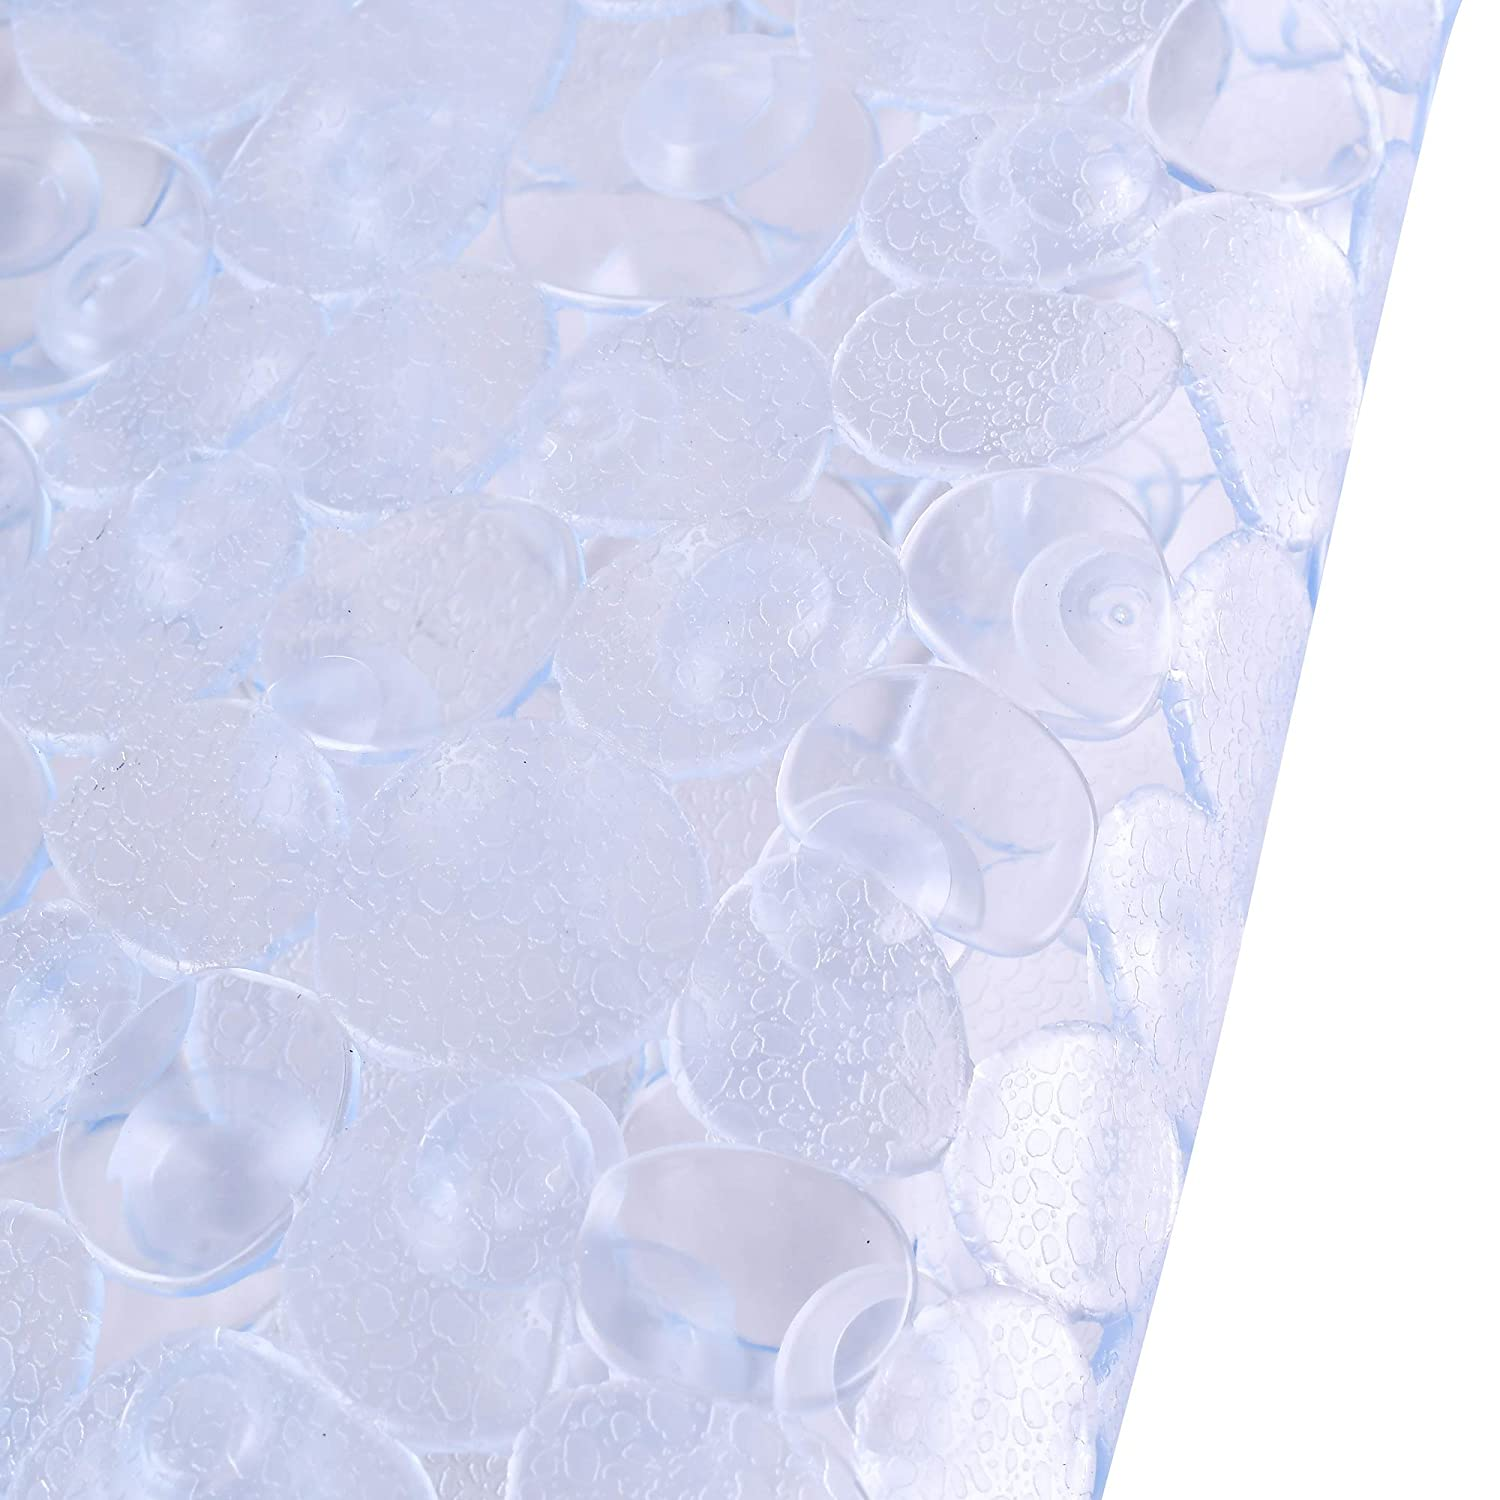 Bathsafe Thicken PVC Frosted Pebbles Non-slip Bath Mats Anti-Bacterial Safety Strong Suction Cups Shower Mat Oval Non-slip Bathtub Mat,69x39CM,Clear